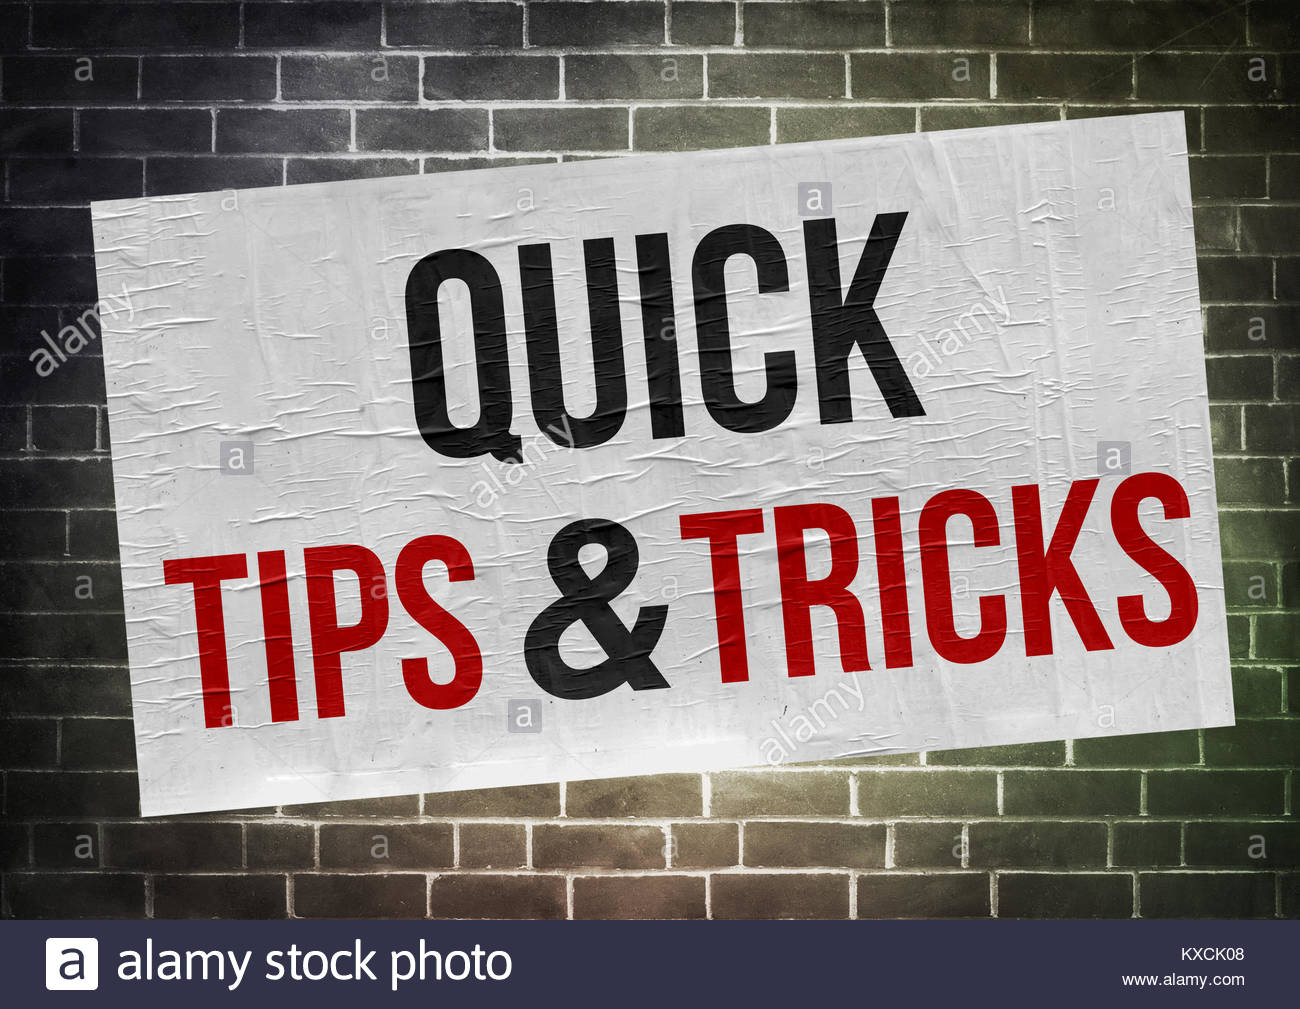 Quick tips and tricks - poster concept - Stock Image